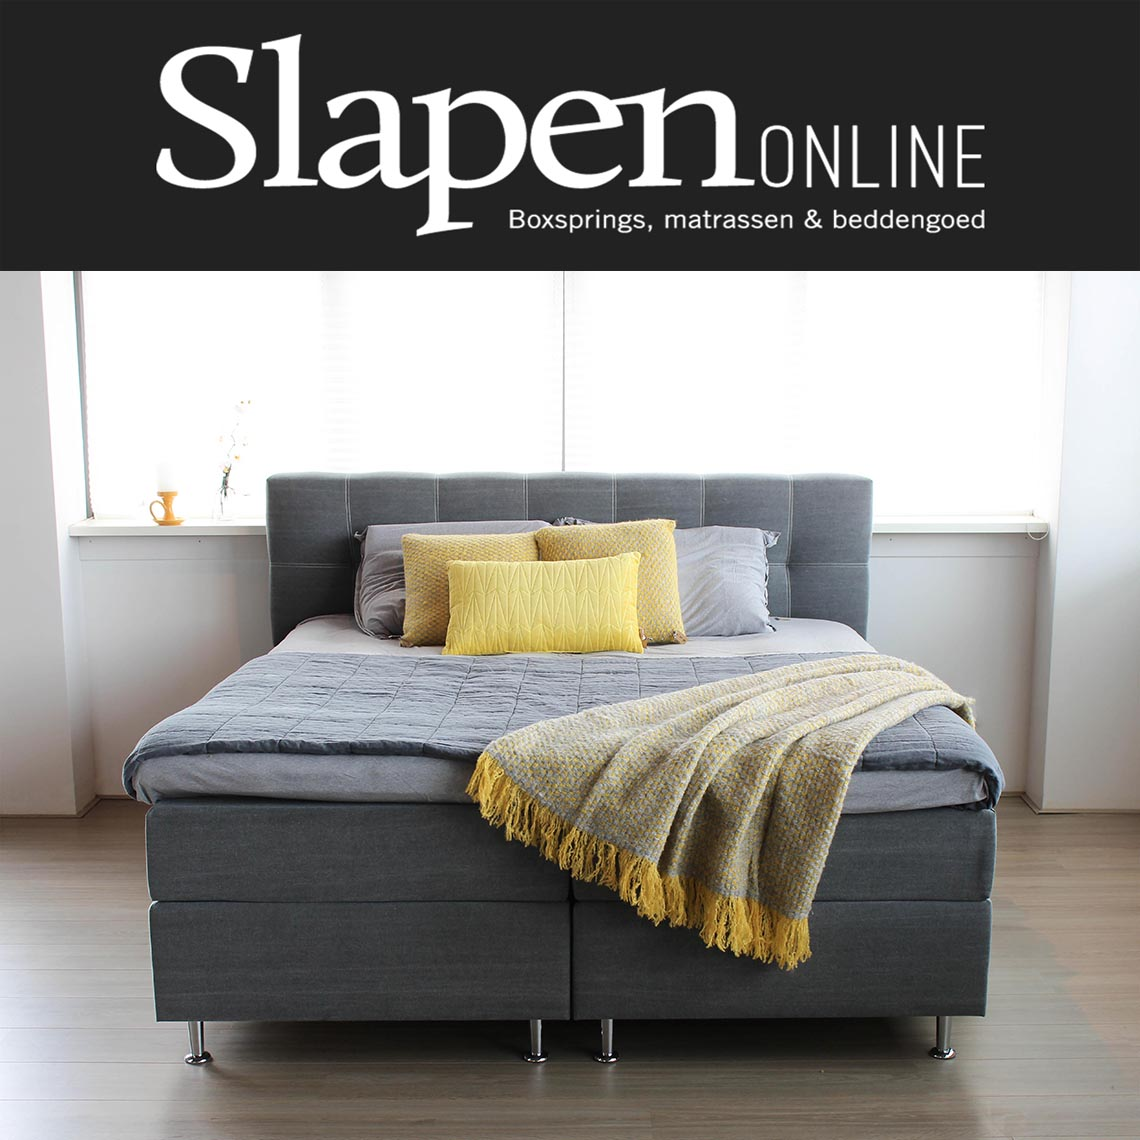 boxspring 160x200 slapen online slapen online. Black Bedroom Furniture Sets. Home Design Ideas